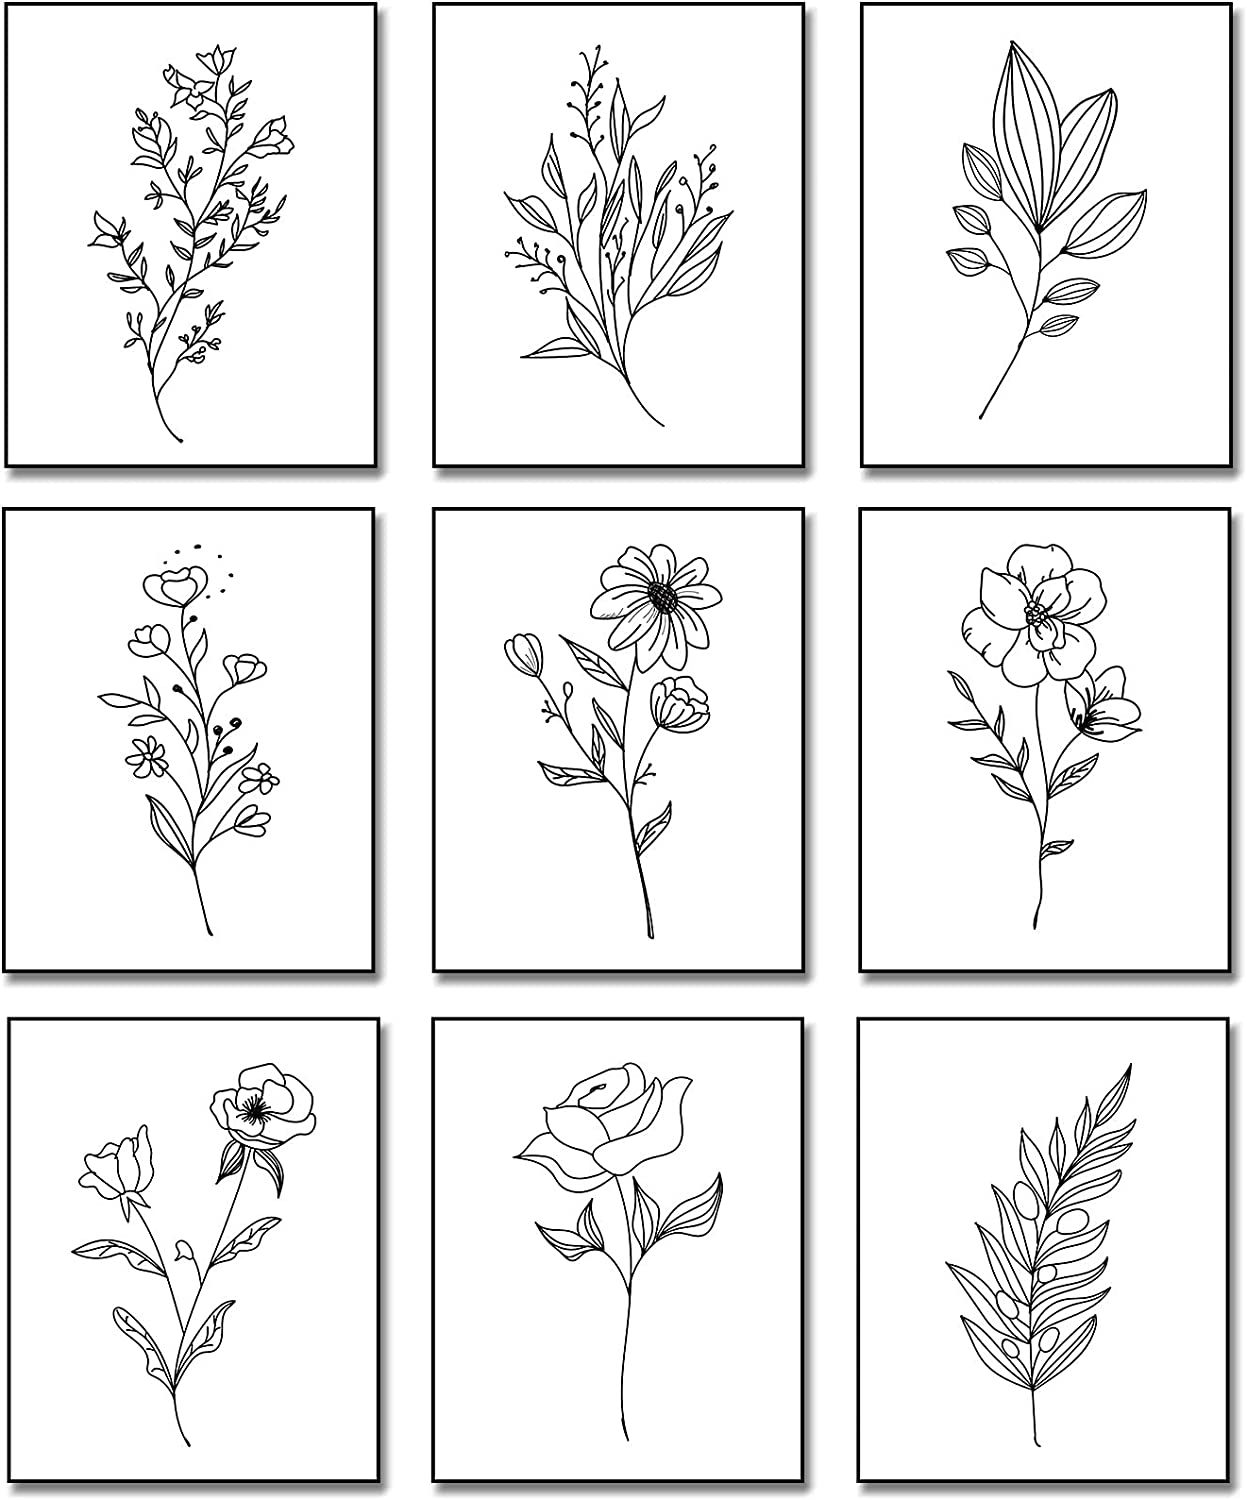 Outus 9 Pieces Botanical Plant Wall Art, Black White Plants Abstract Flowers Minimalist Flowers Wall Decor for Bathroom Kitchen Wall Decor Pictures, Unframed